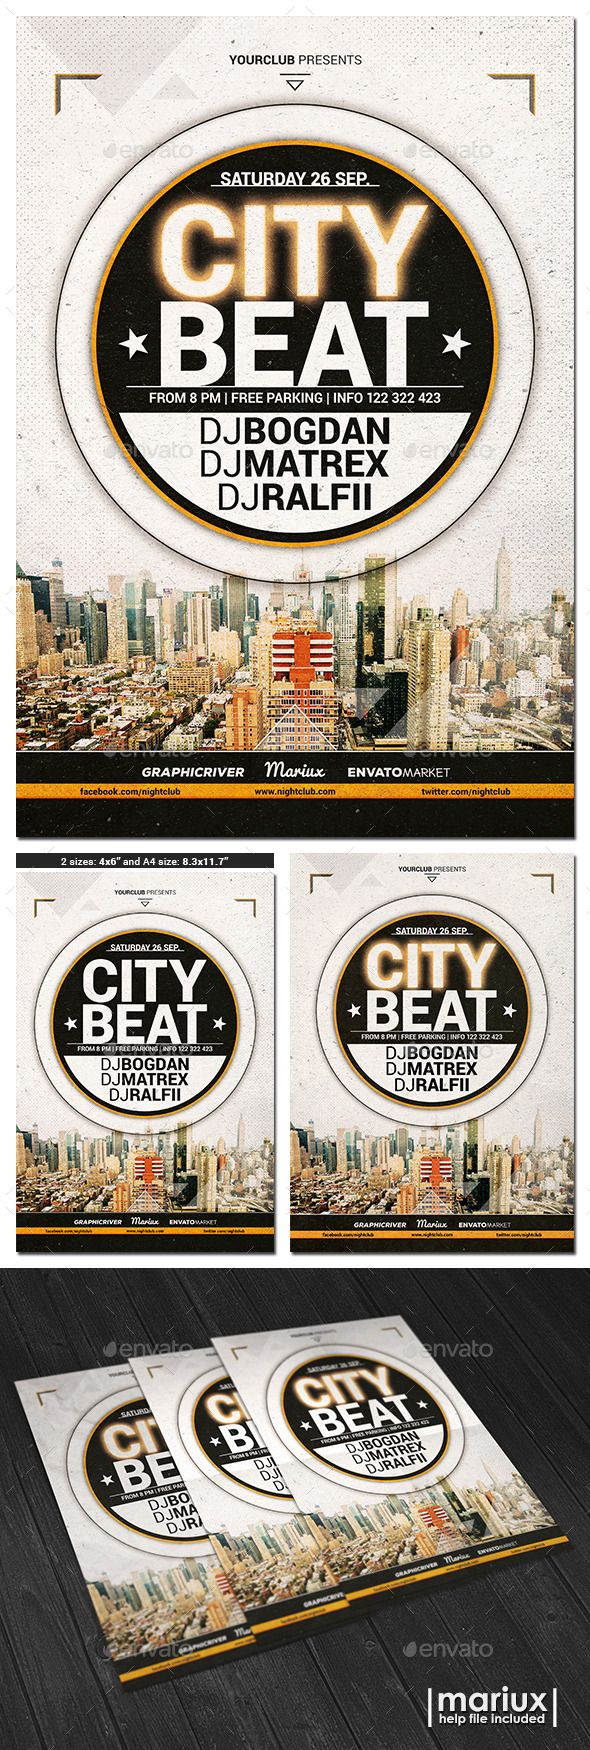 City Beat Flyer Poster